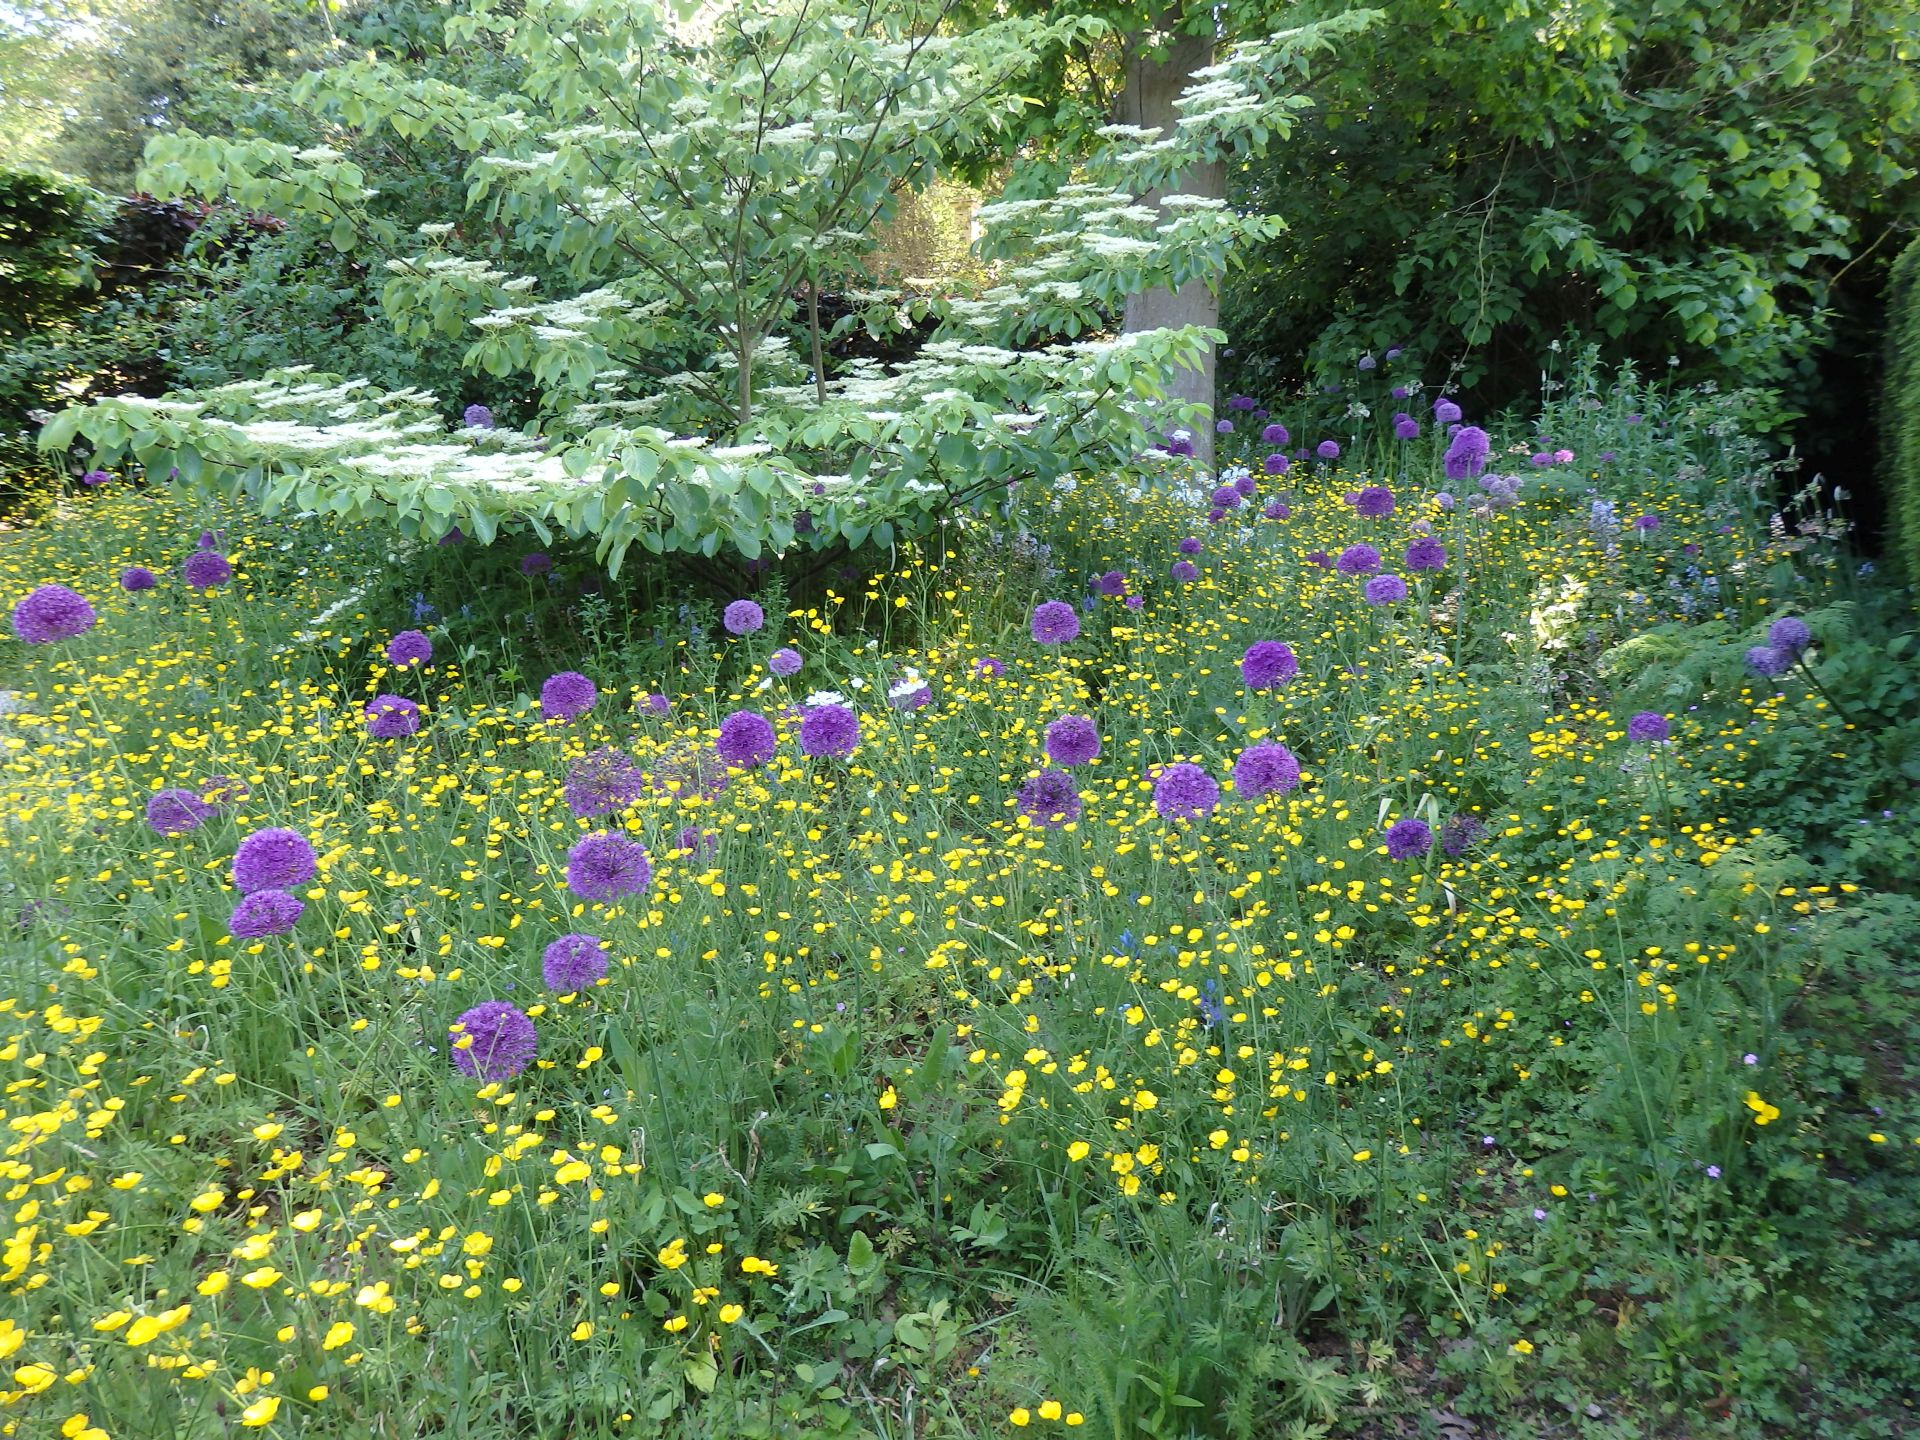 Buttercups and alliums in the wild garden